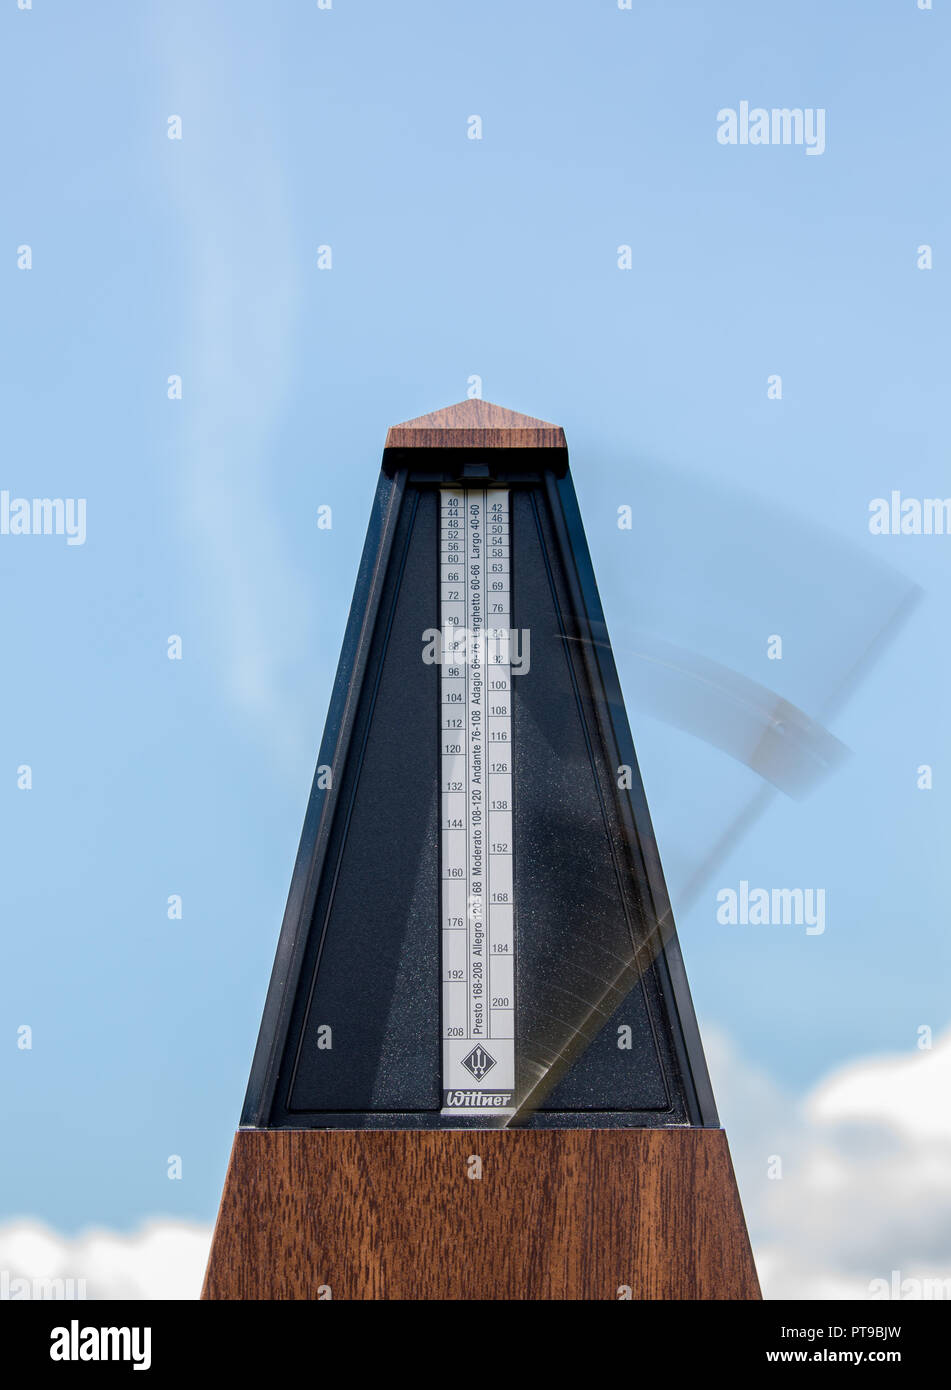 Portrait close up of musical timekeeping metronome in motion against blue sky background. Concept: time movement, time moving fast, time flies - Stock Image